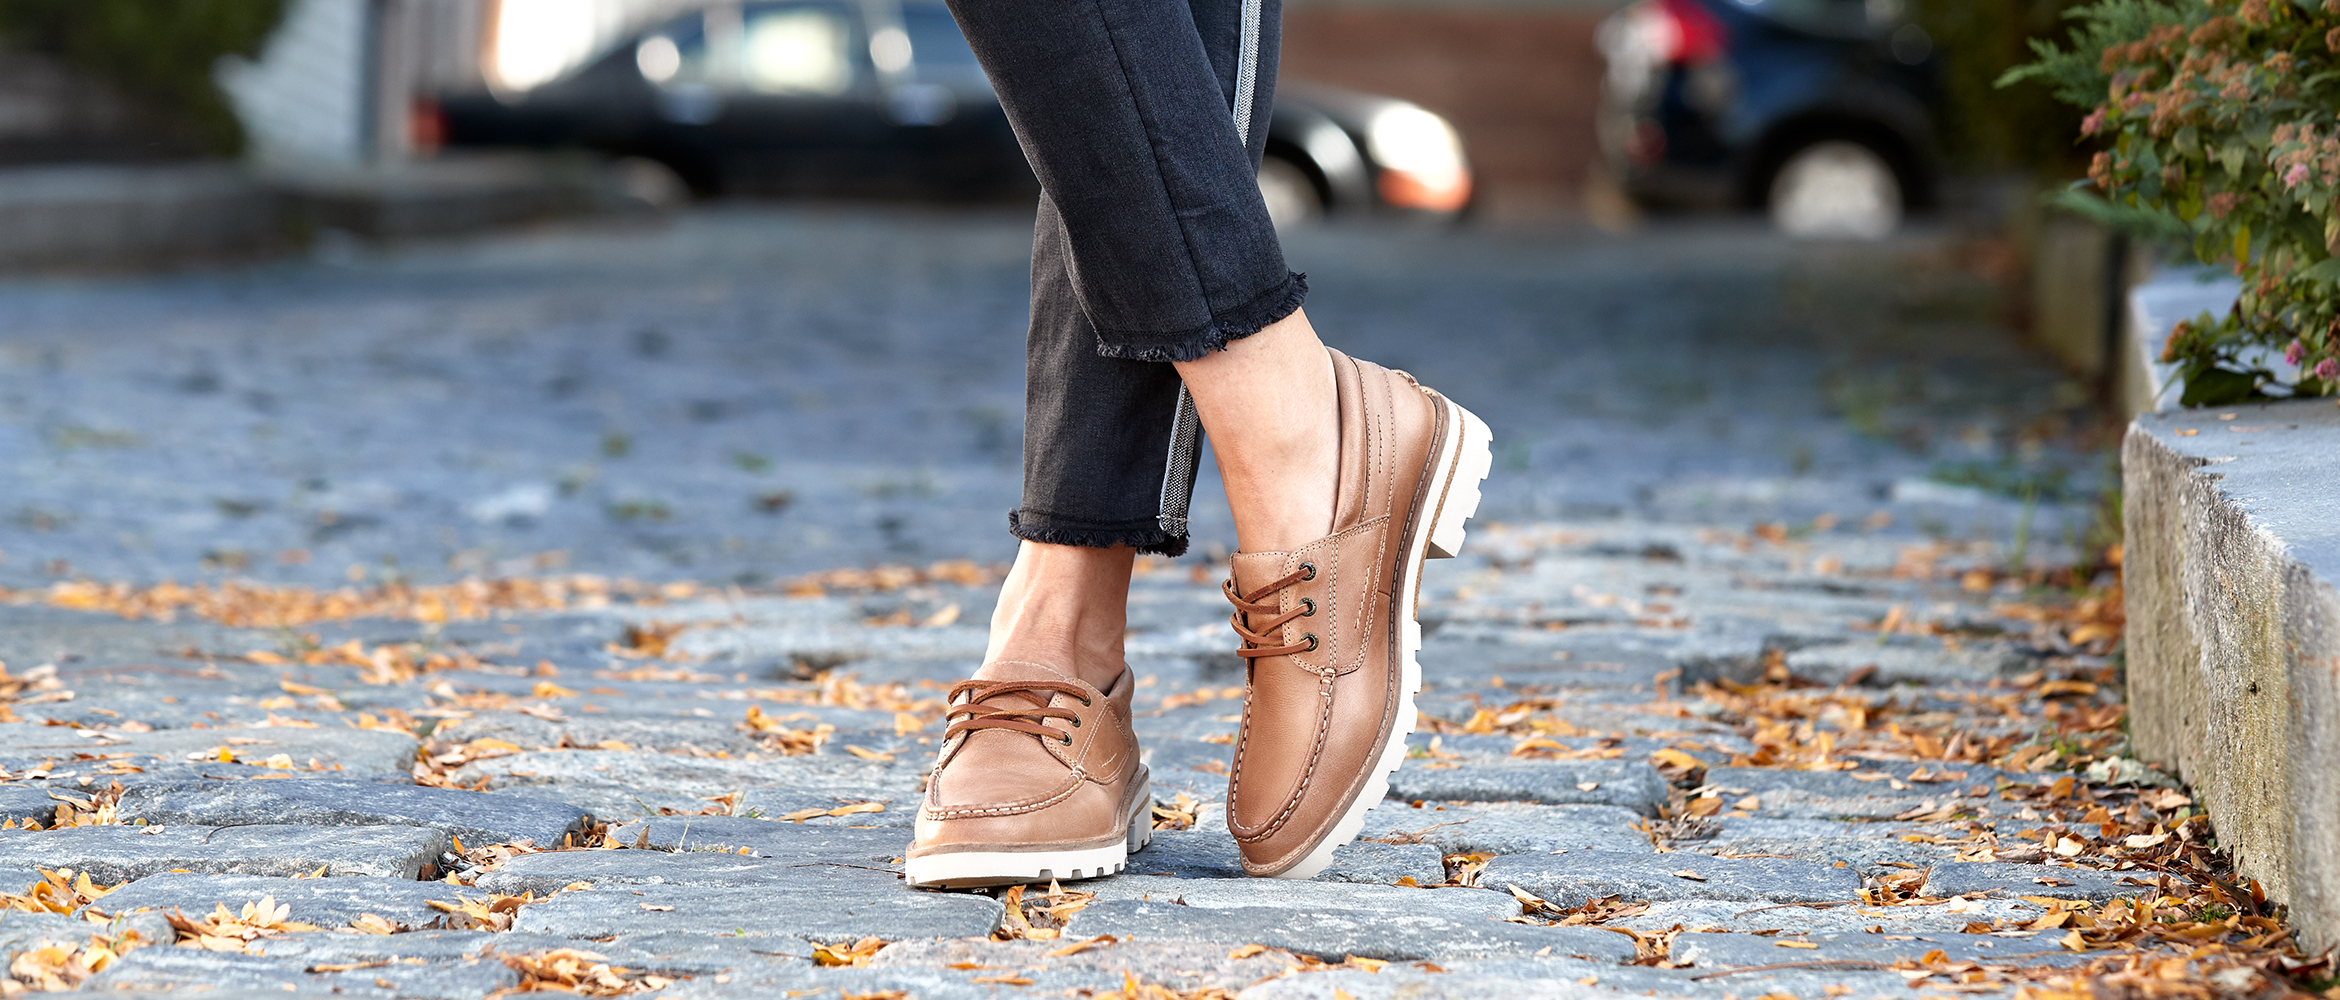 A pair of crossed women's lug shoes on a cobble stone street with leaves strewn about.